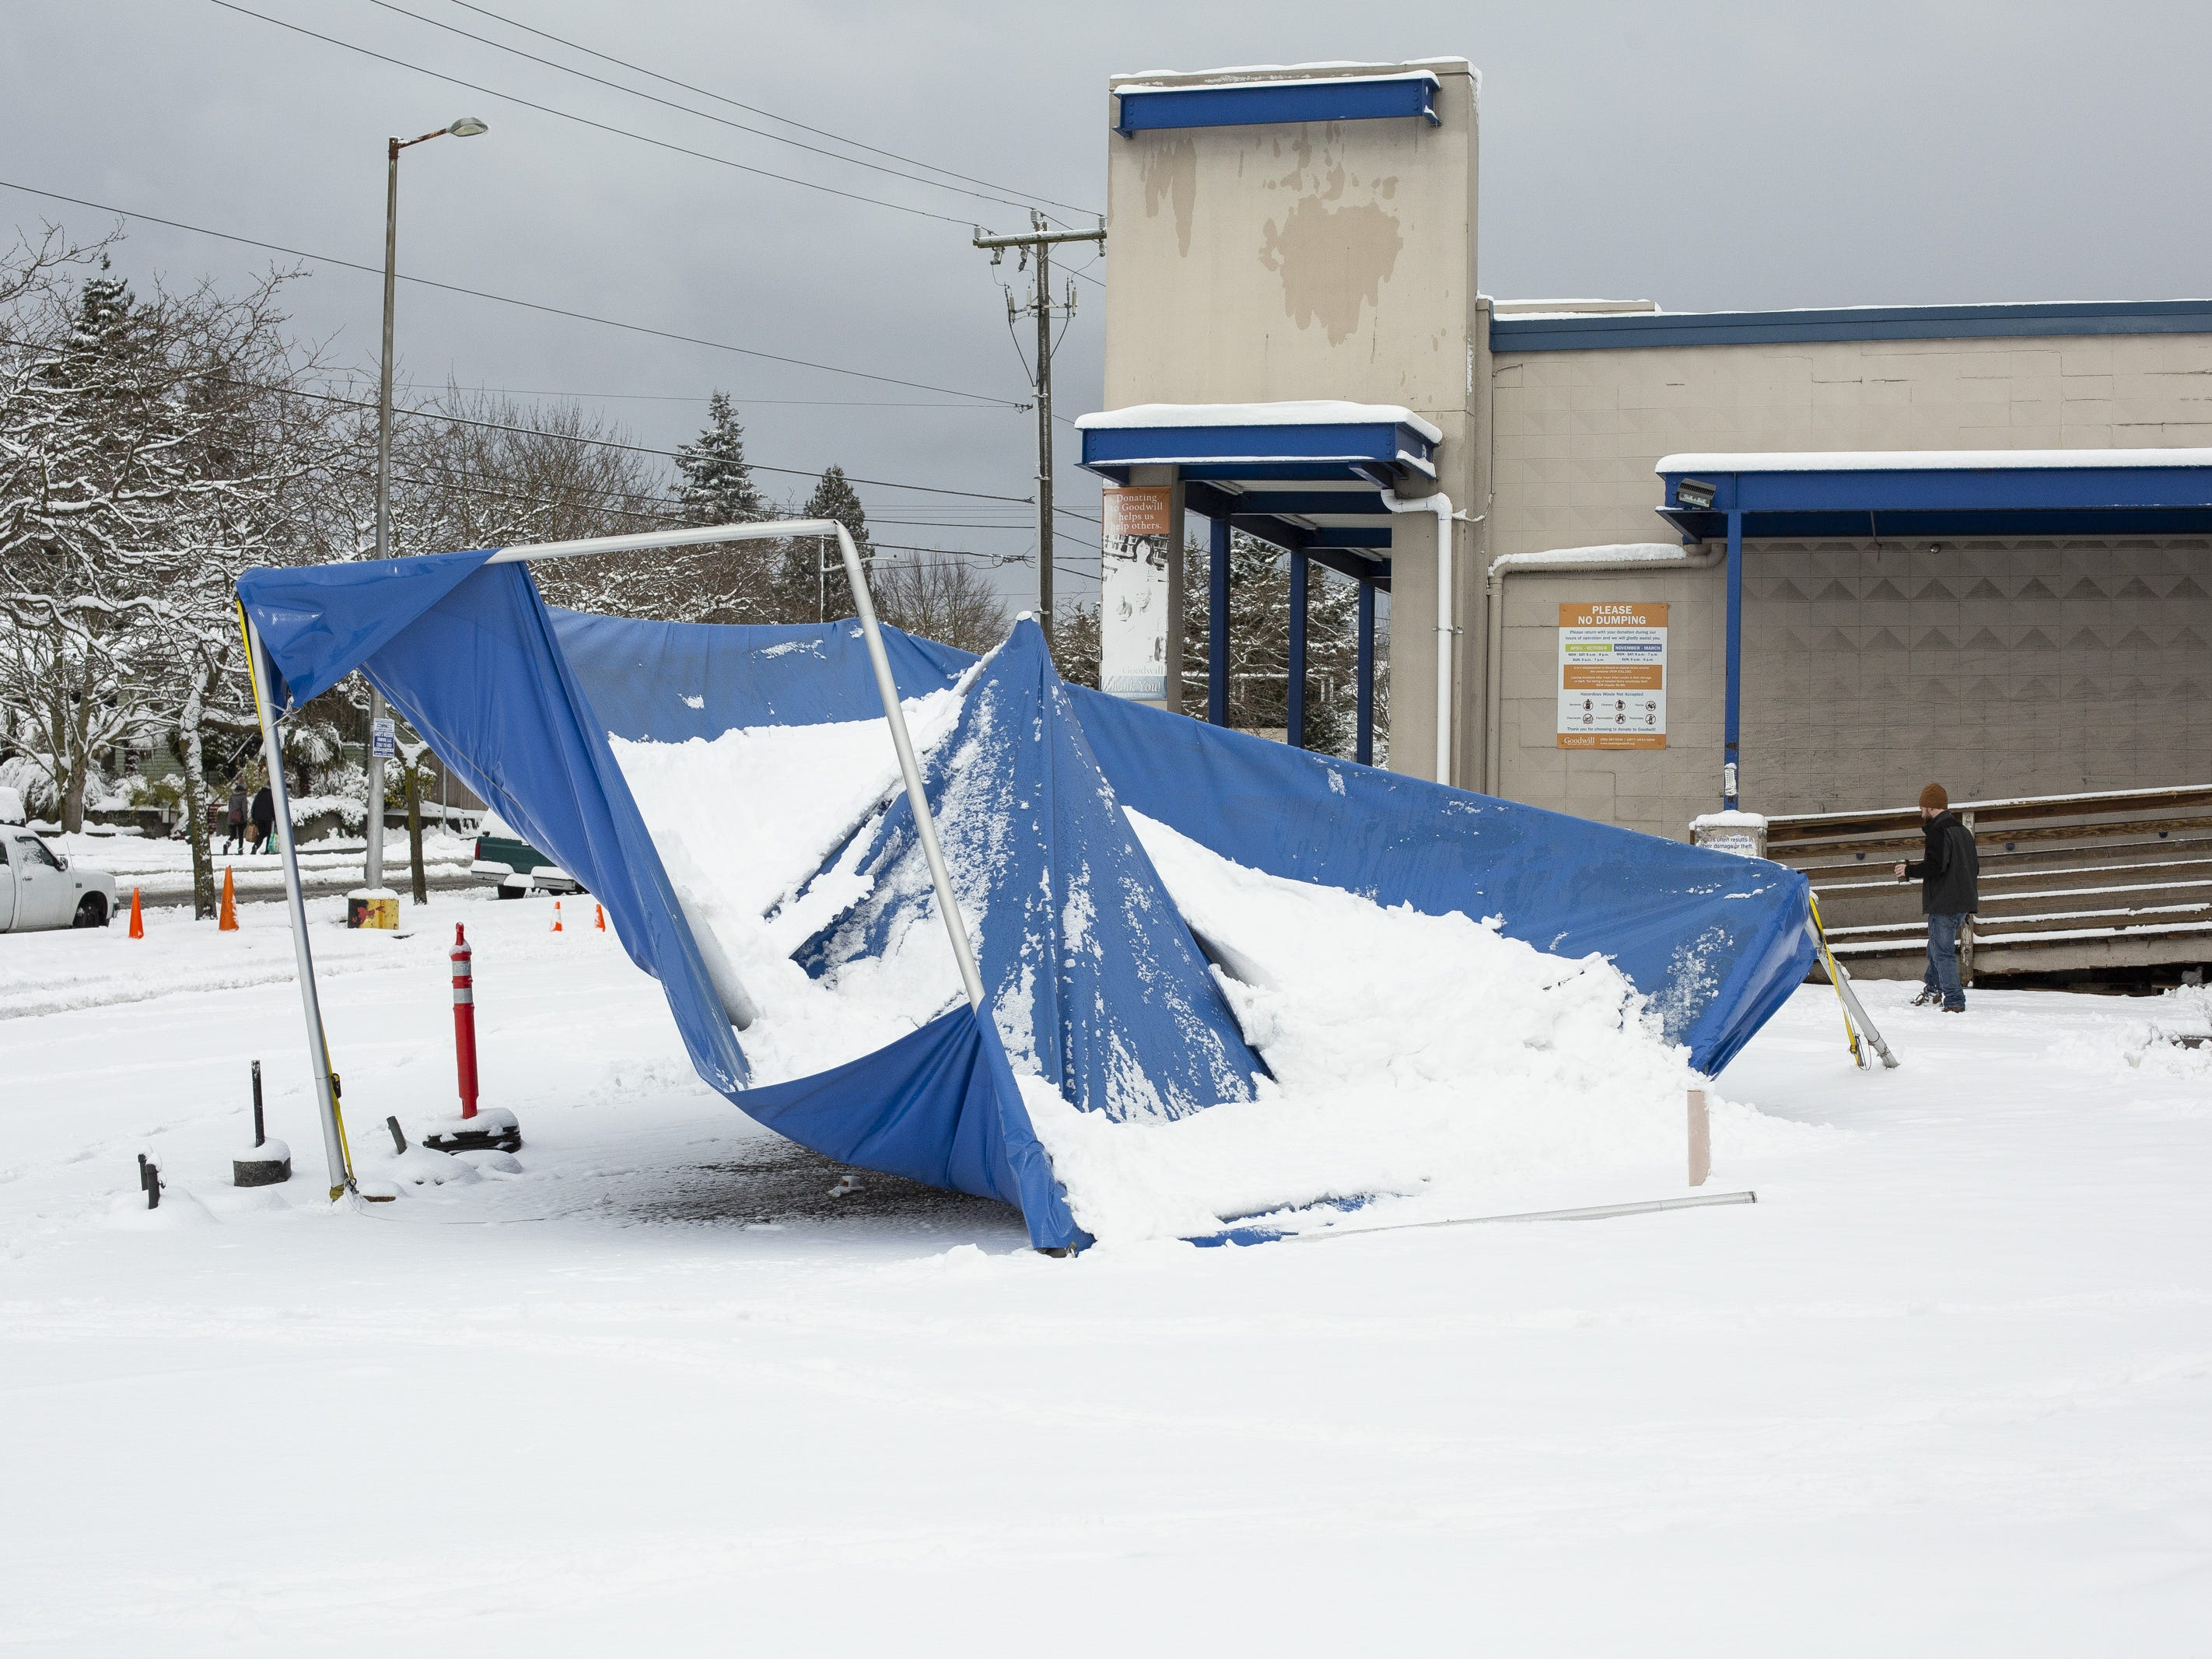 A tent collapsed by the weight of snow is pictured at a Goodwill retail location after a large storm blanketed the city with snow on February 9, 2019 in Seattle, Washington.